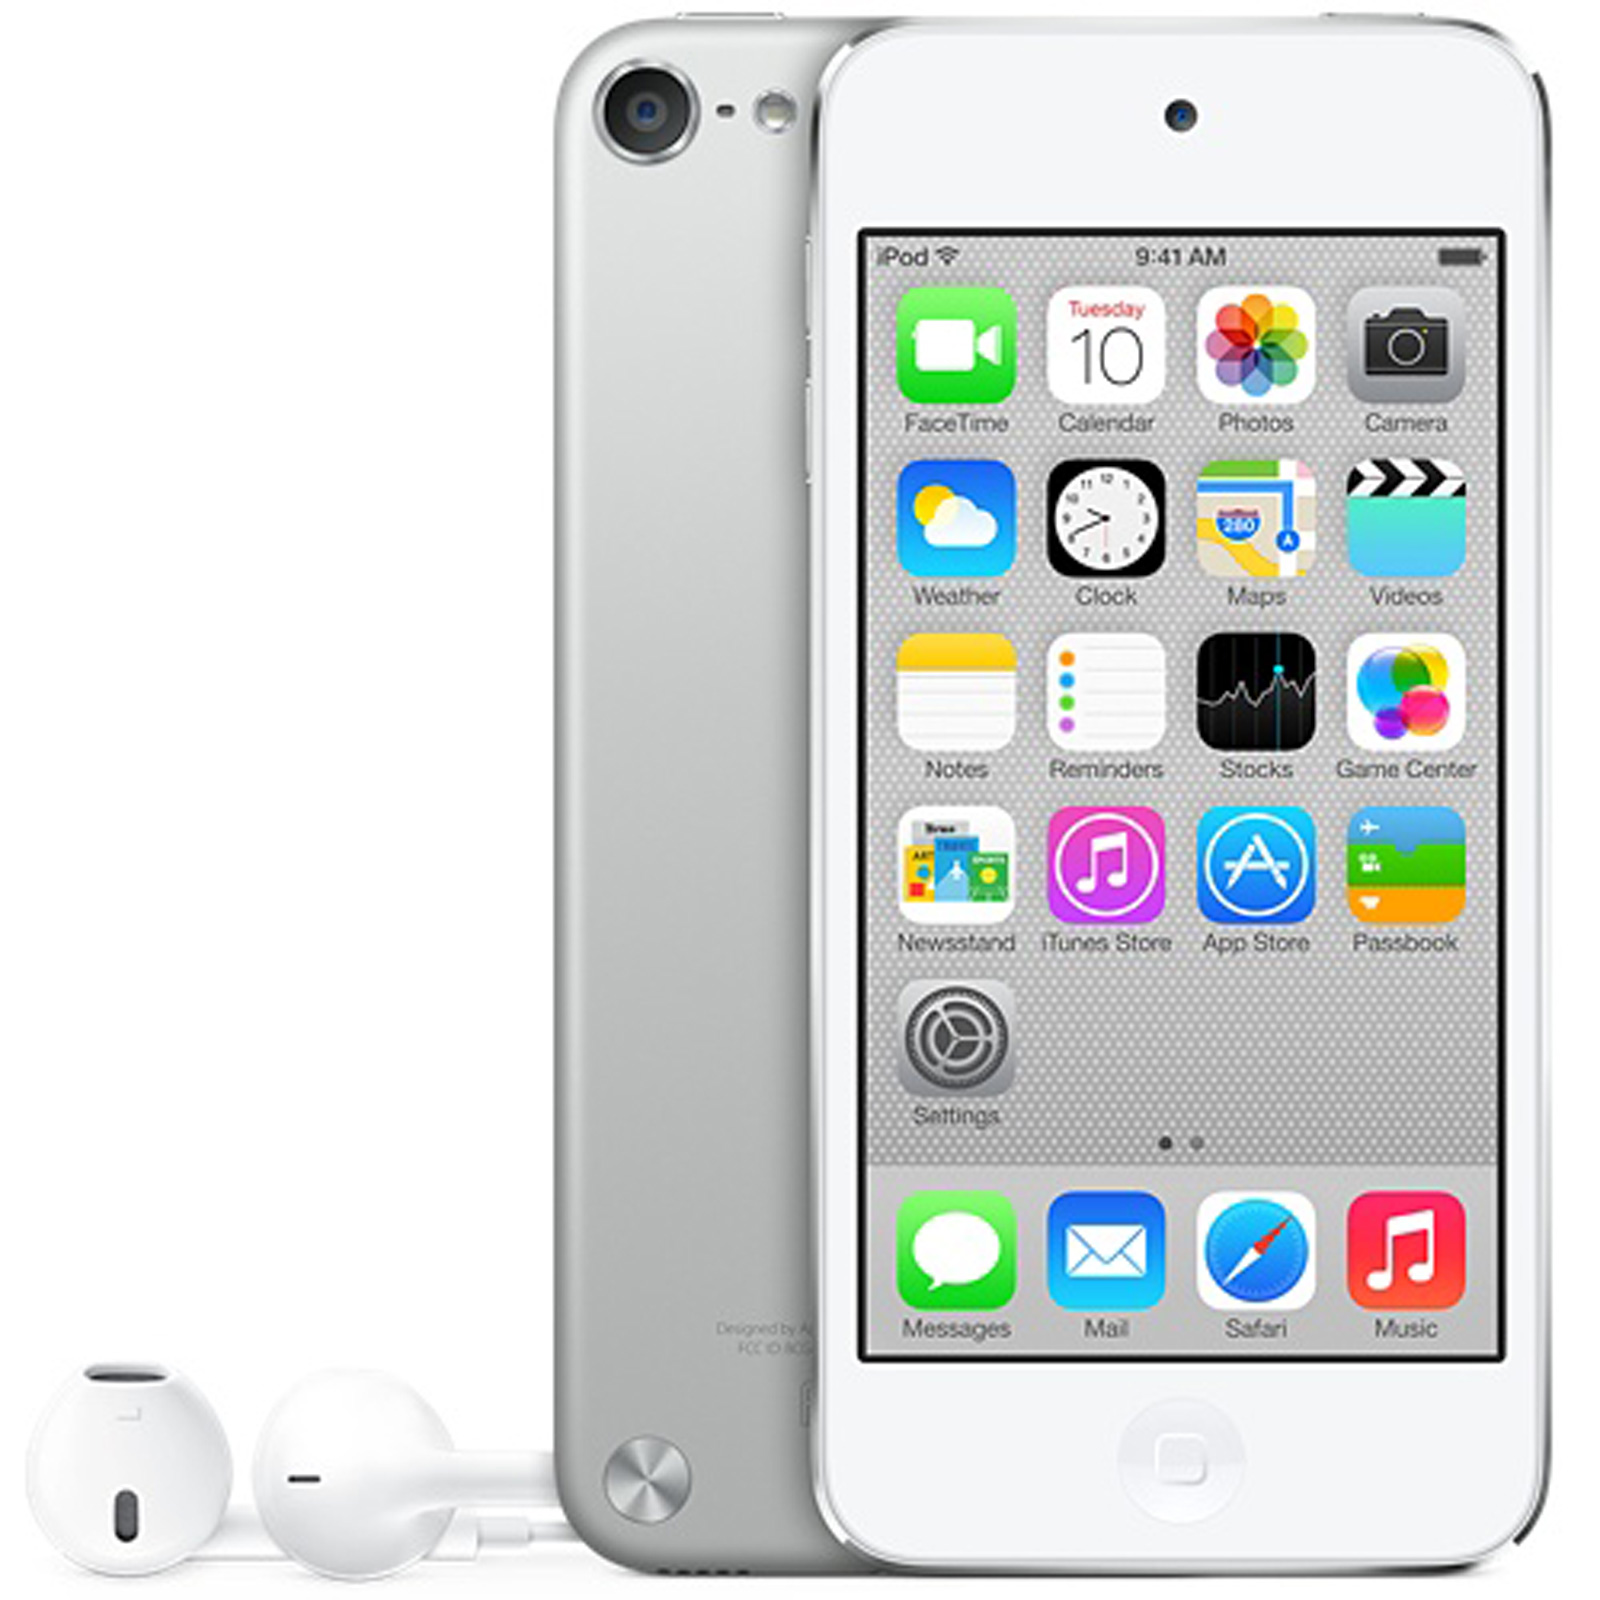 apple ipod touch 16 go argent lecteur mp3 ipod apple sur ldlc. Black Bedroom Furniture Sets. Home Design Ideas